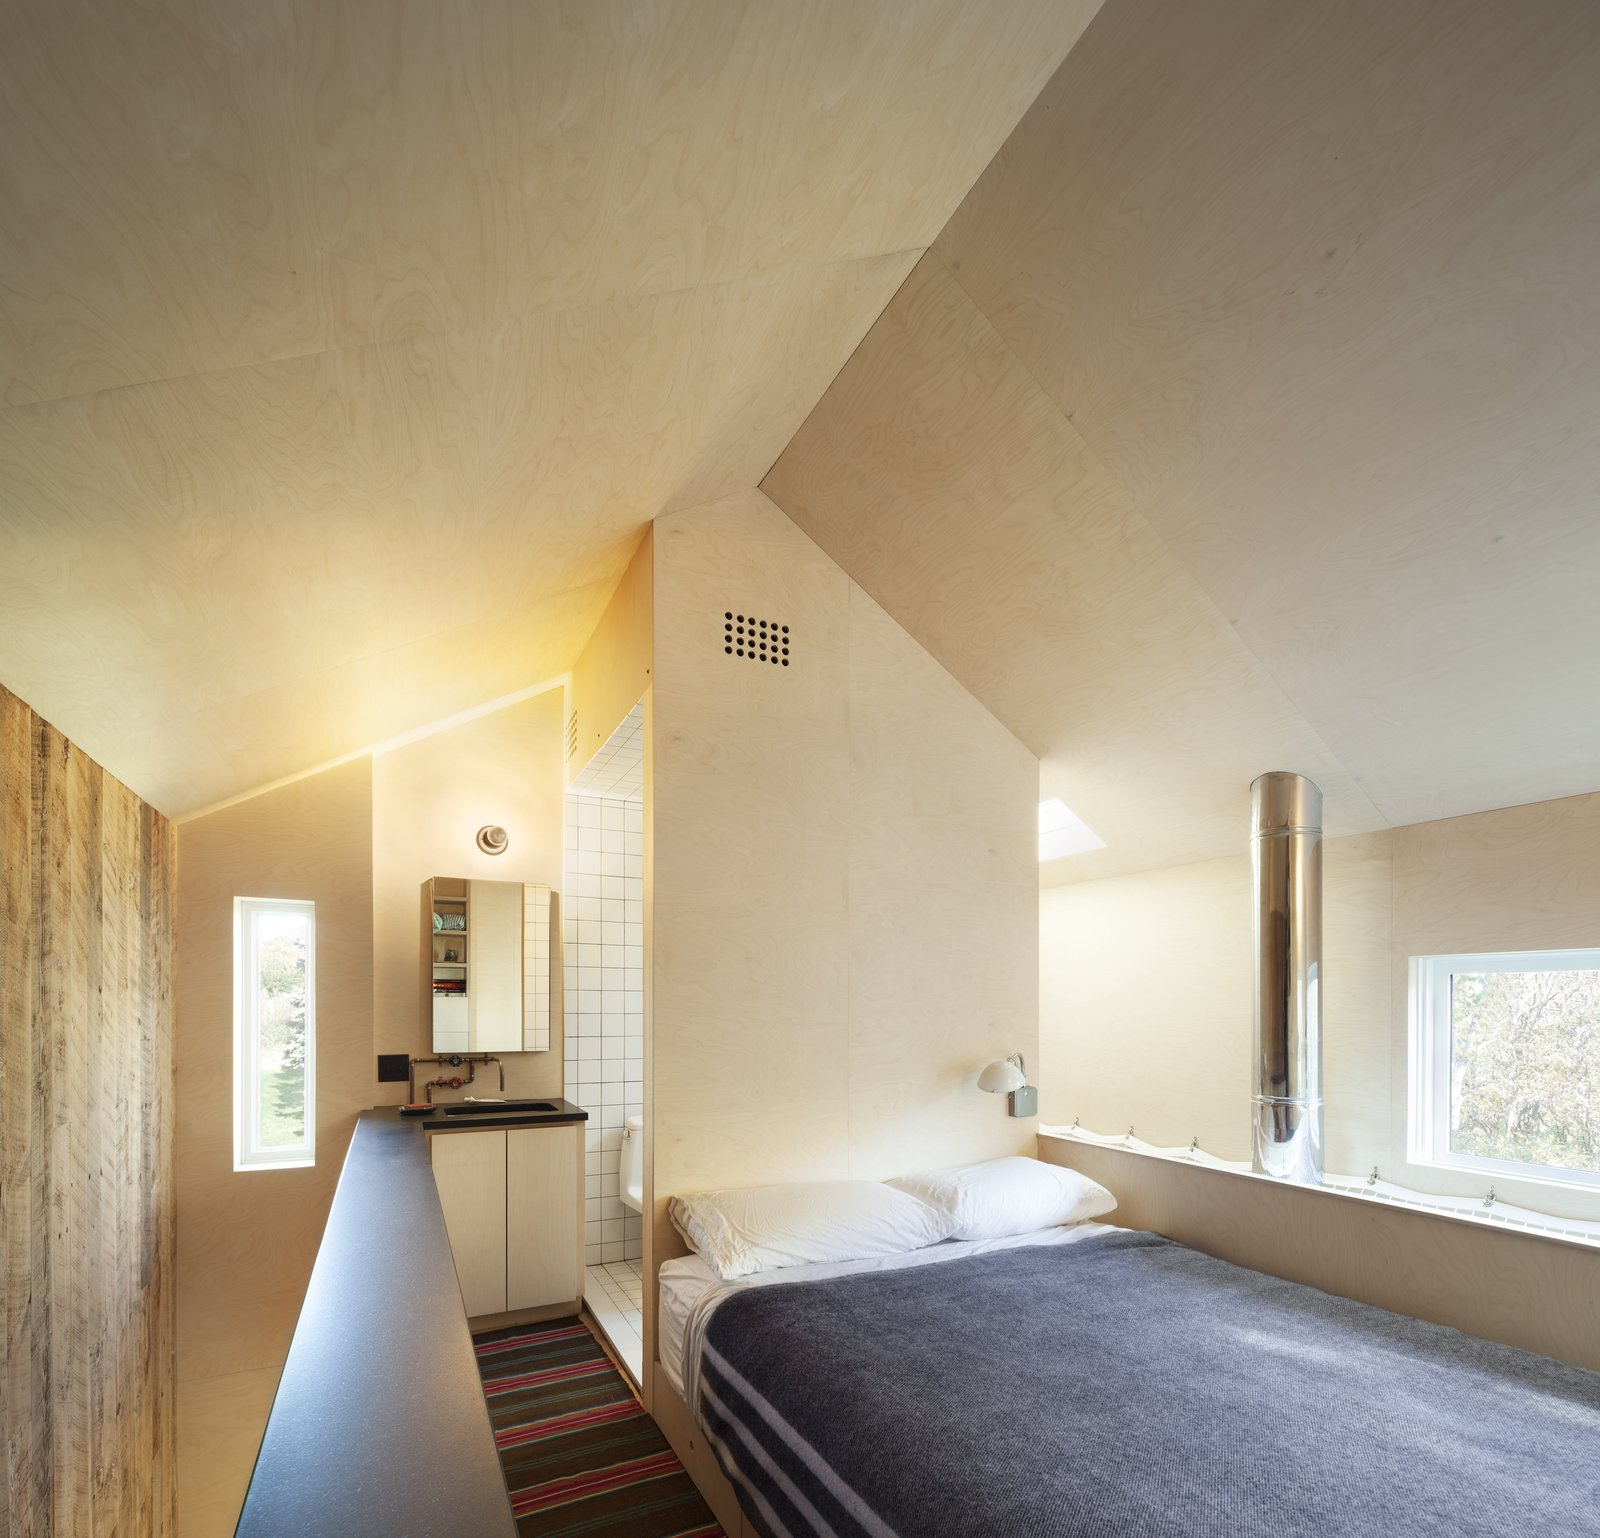 Bedroom, Wall Lighting, Plywood Floor, and Bed The bedroom with open bathroom behind. The volume of the bathroom shears the open geometry of the gabled roof form.  Micro Cabin